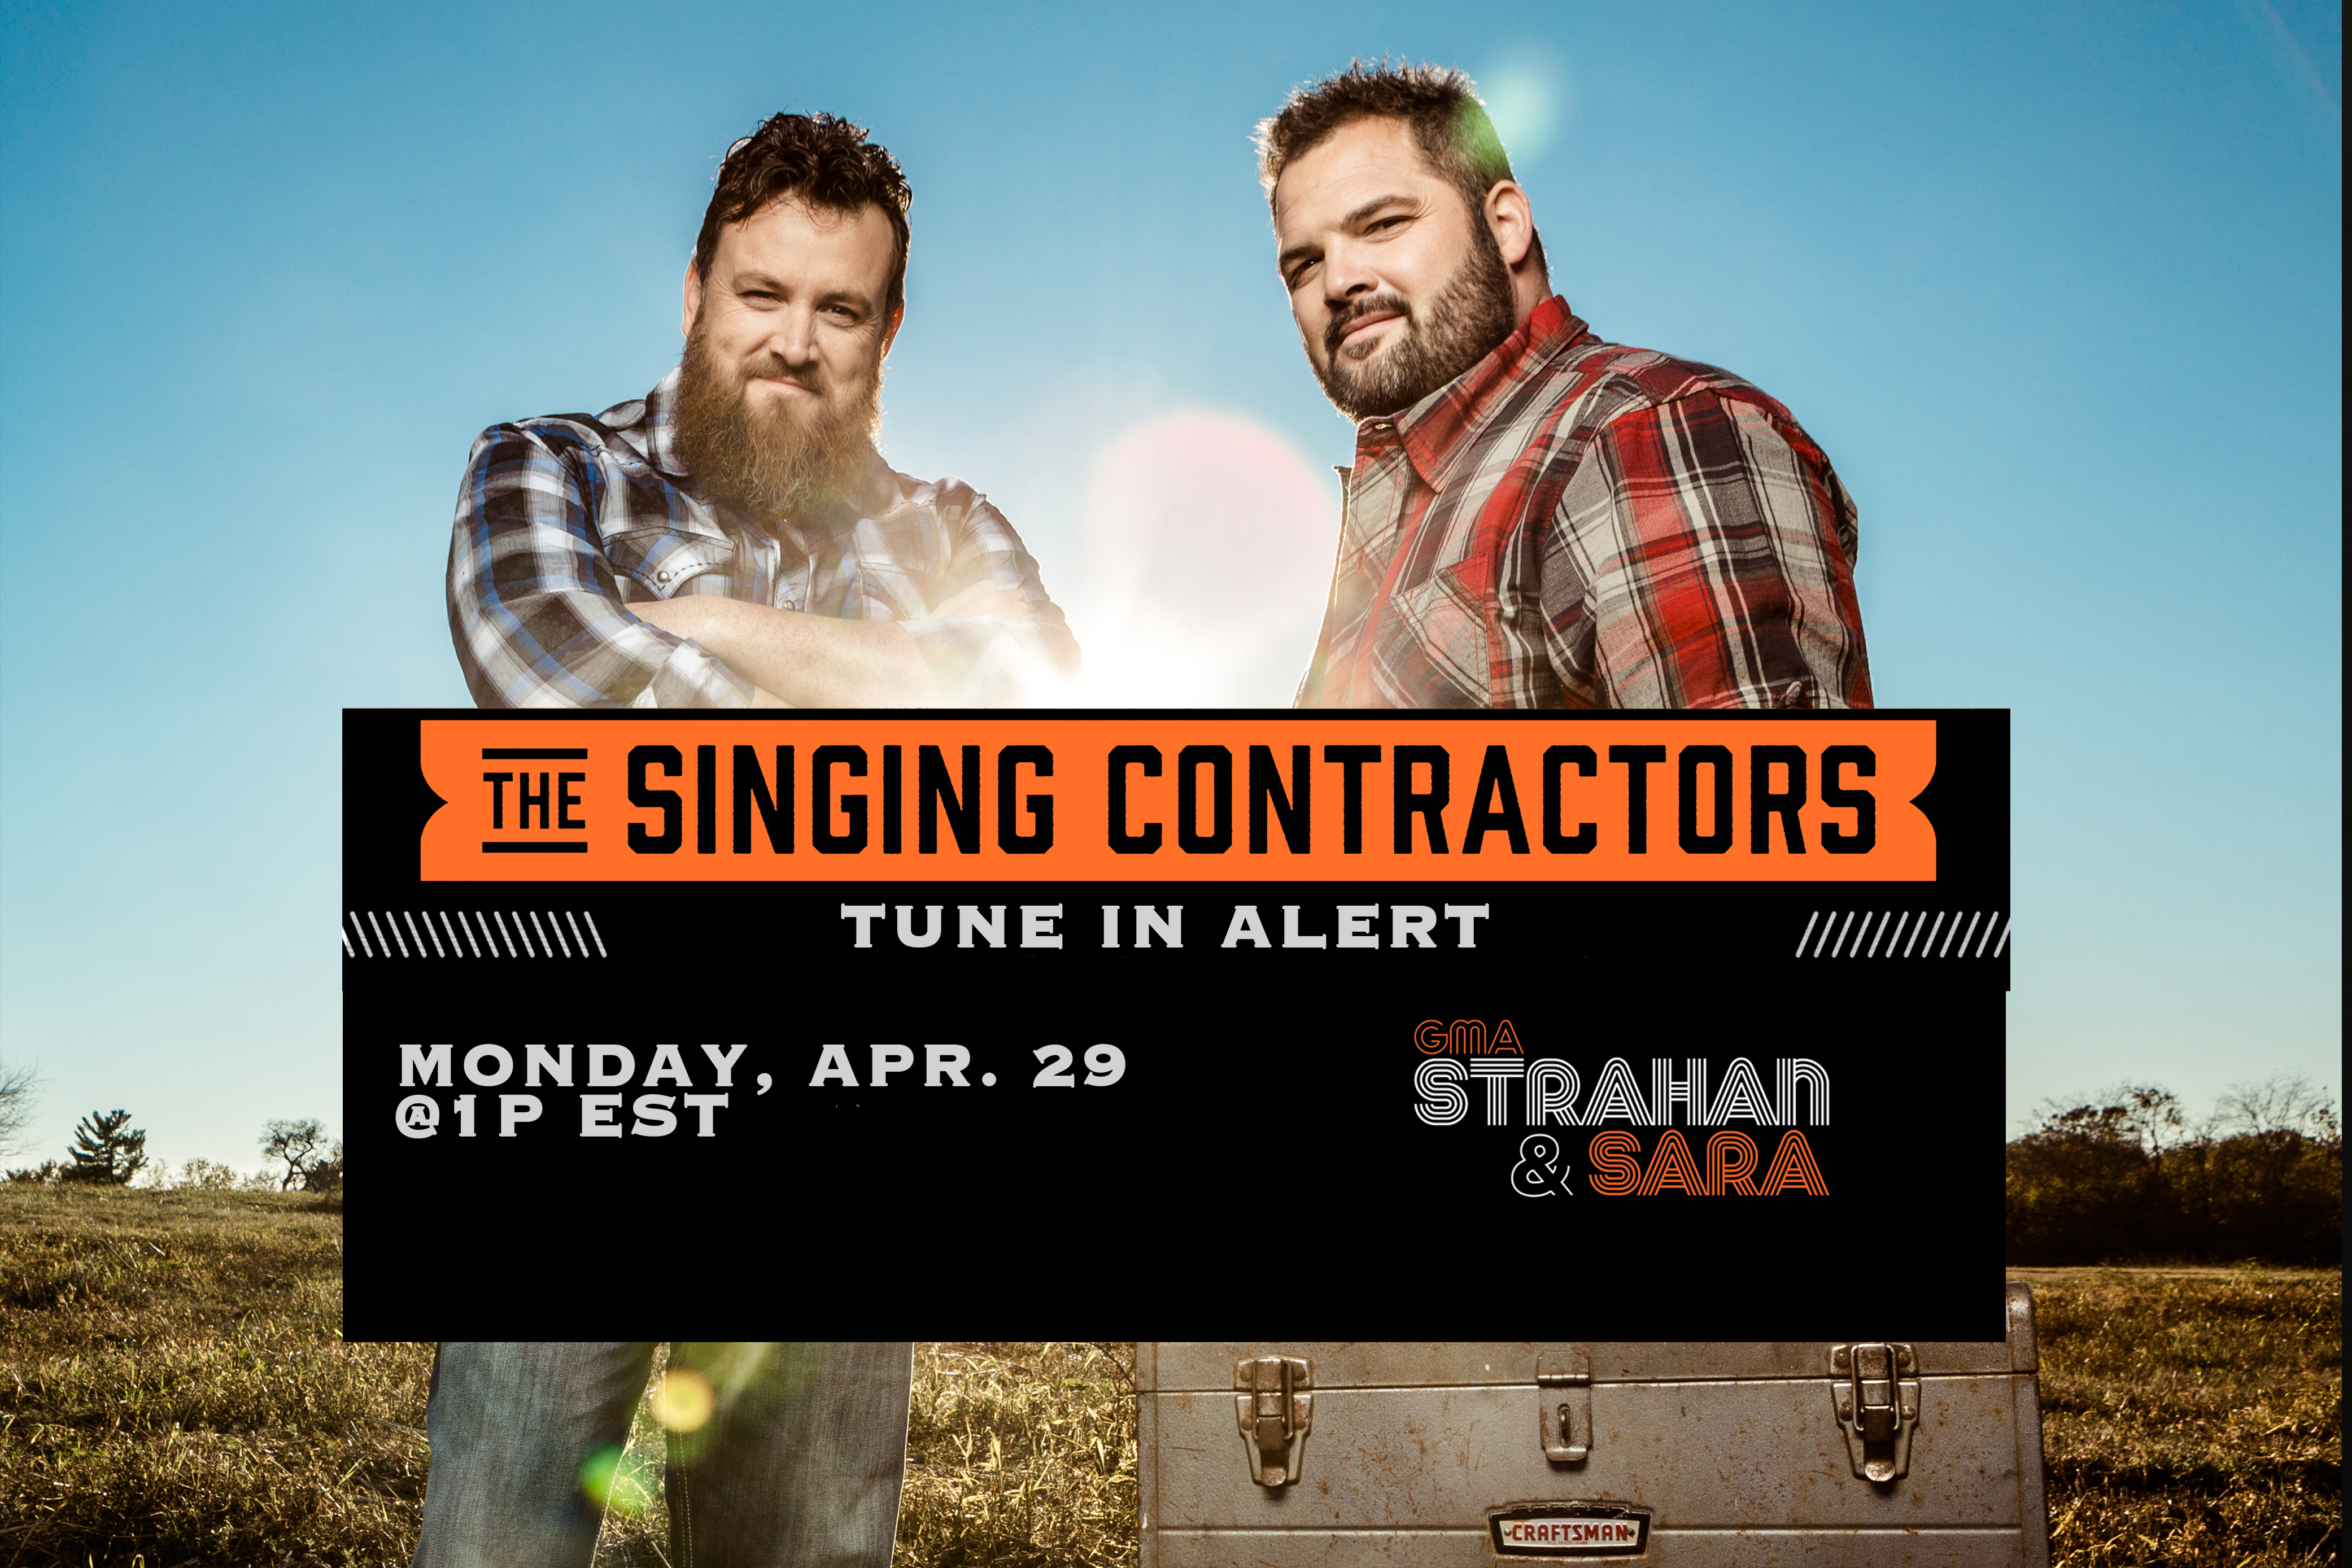 The Singing Contractors - A pair of contractors singing to